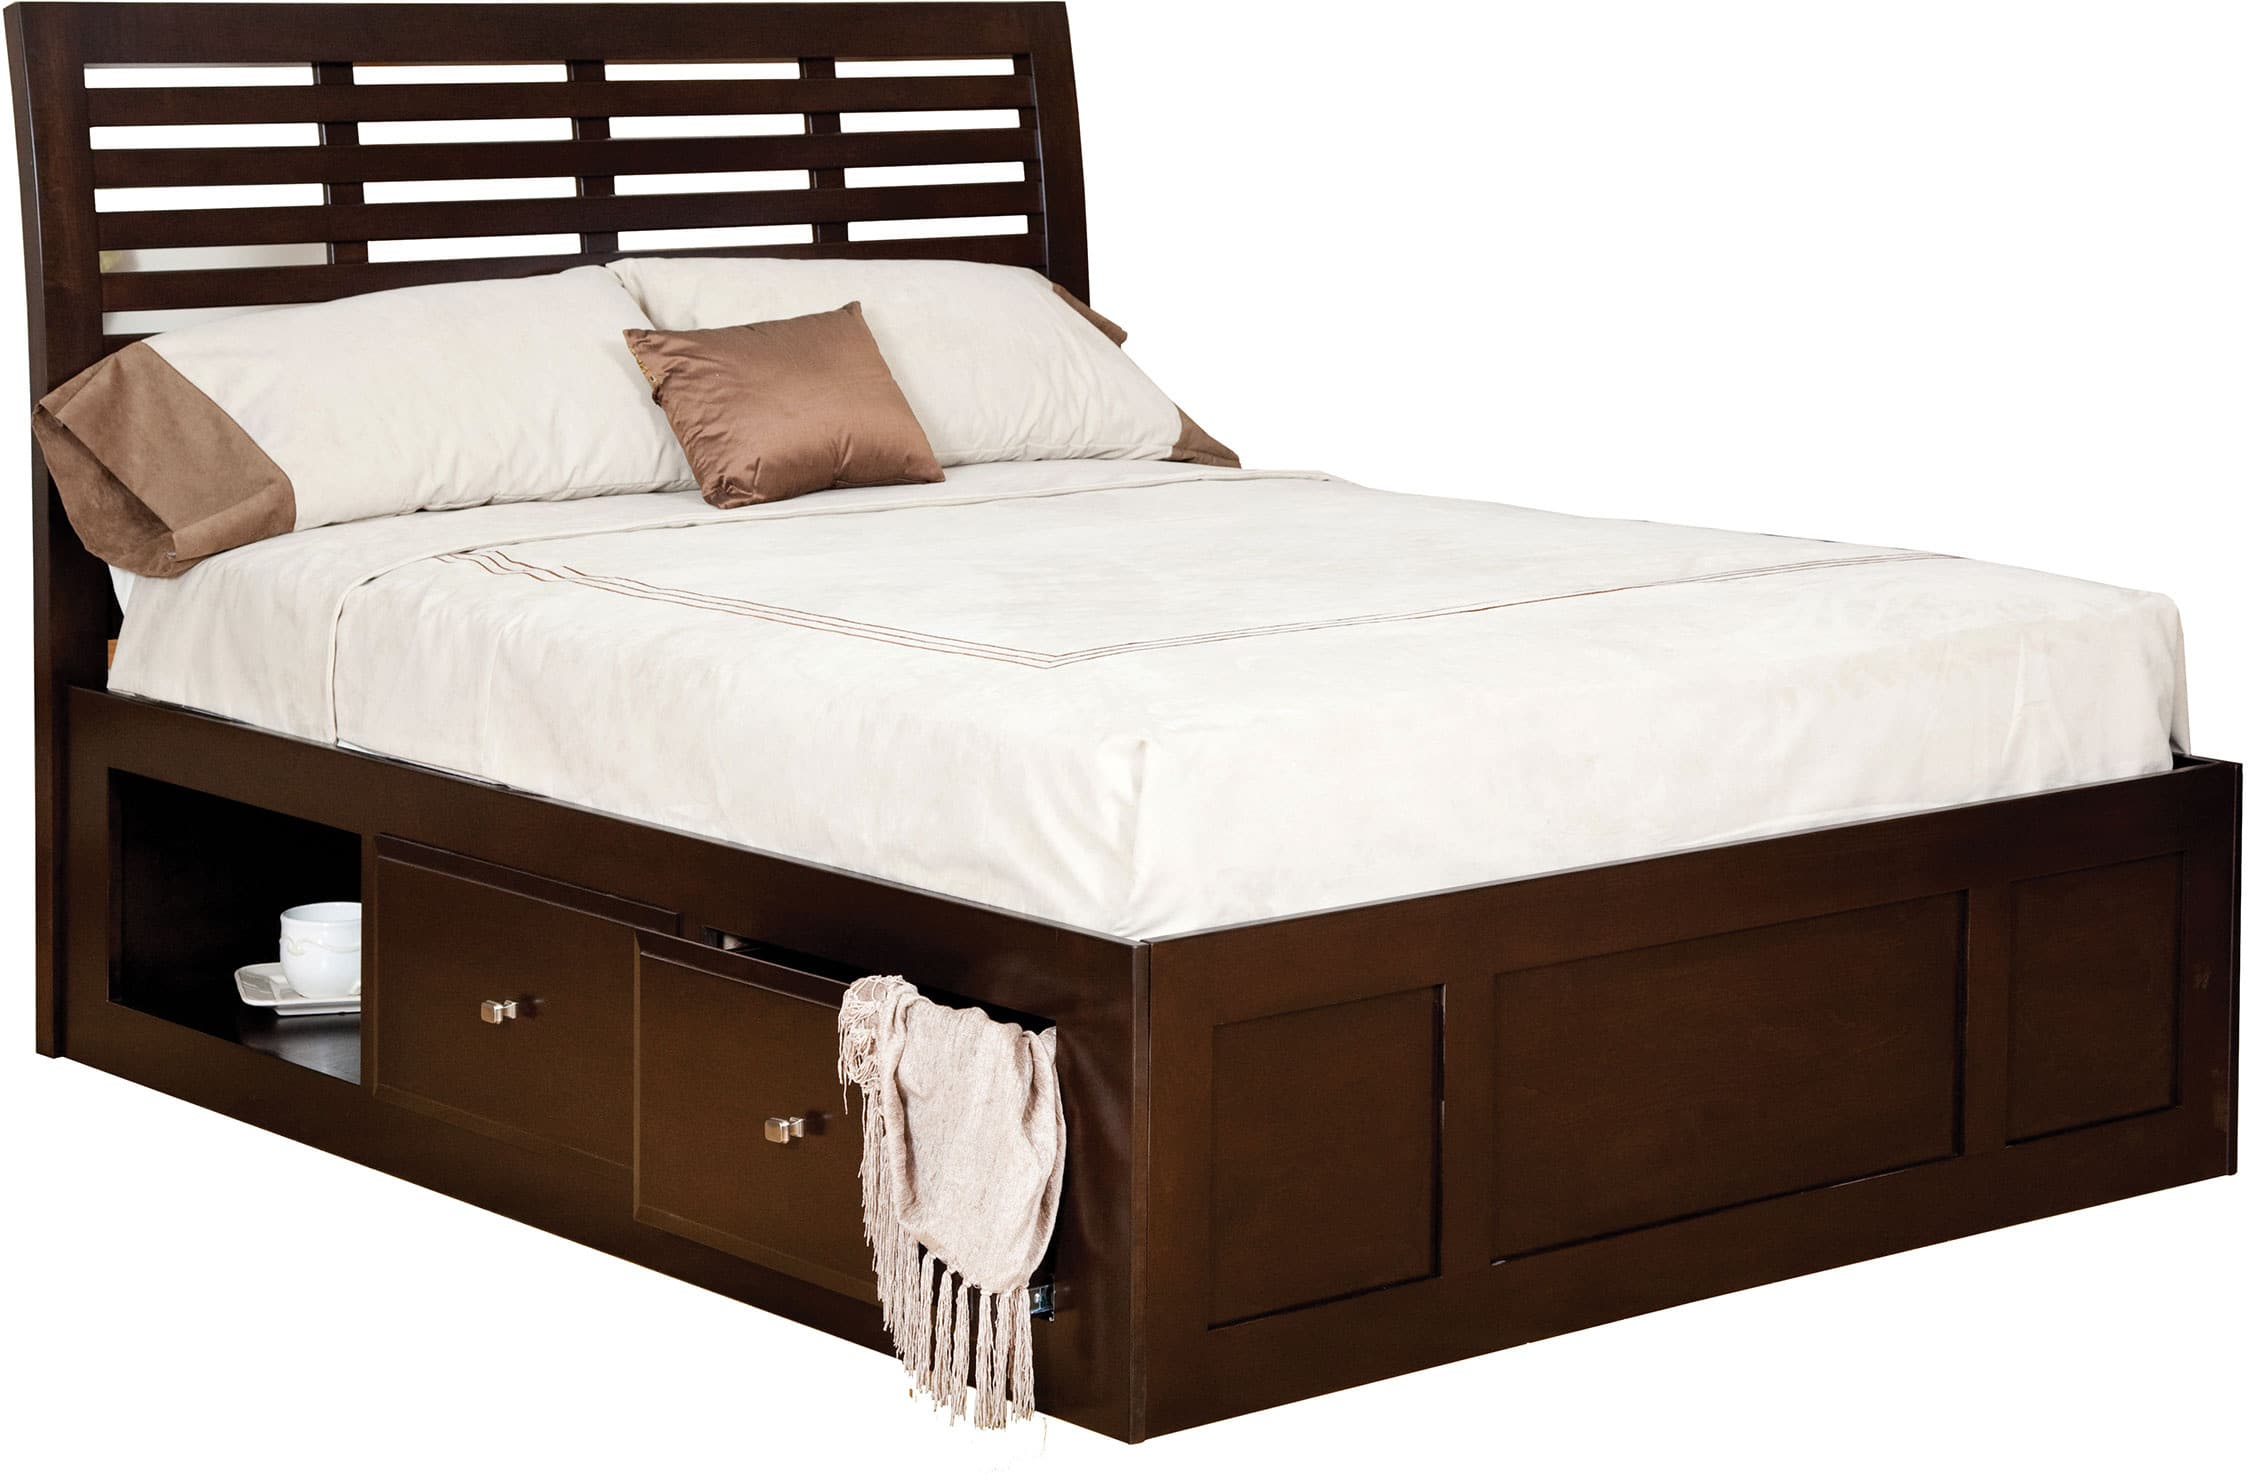 Park Avenue Bed w/ Drawers